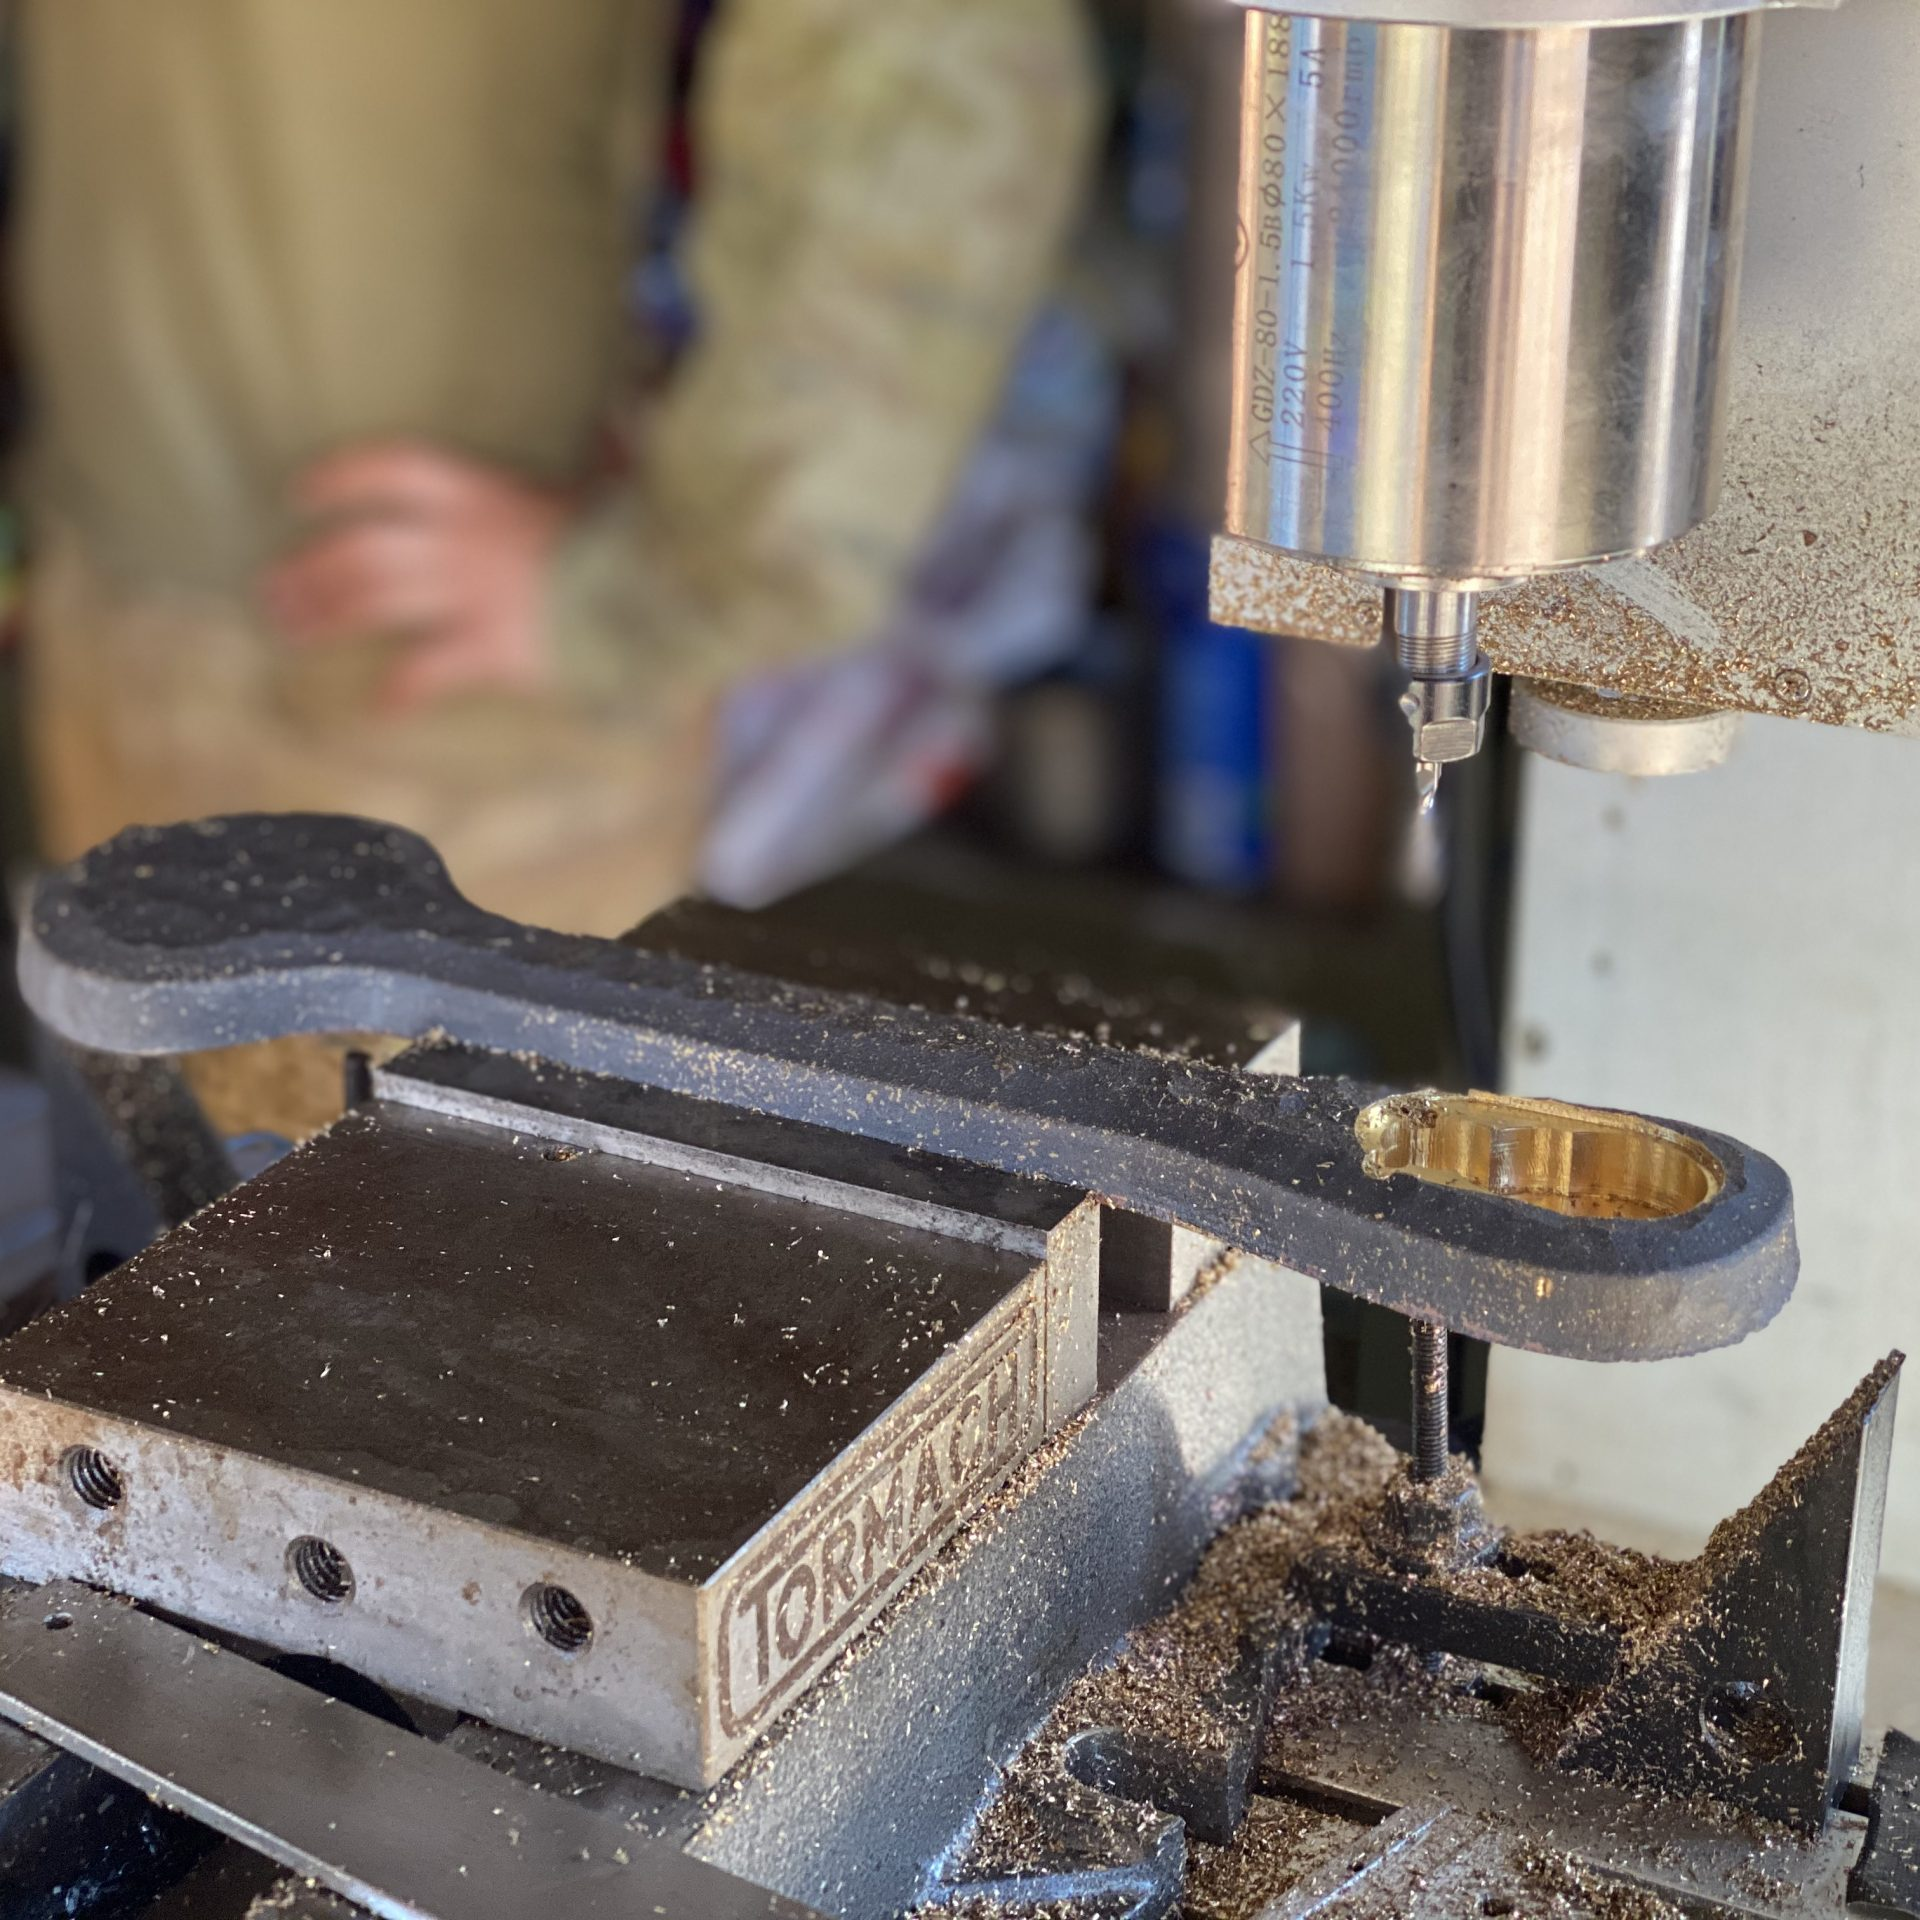 Finishing 3D printed Gunner's ratchet used by Defence in the service of the M242 Australian Light Armoured Vehicle Machine Gun